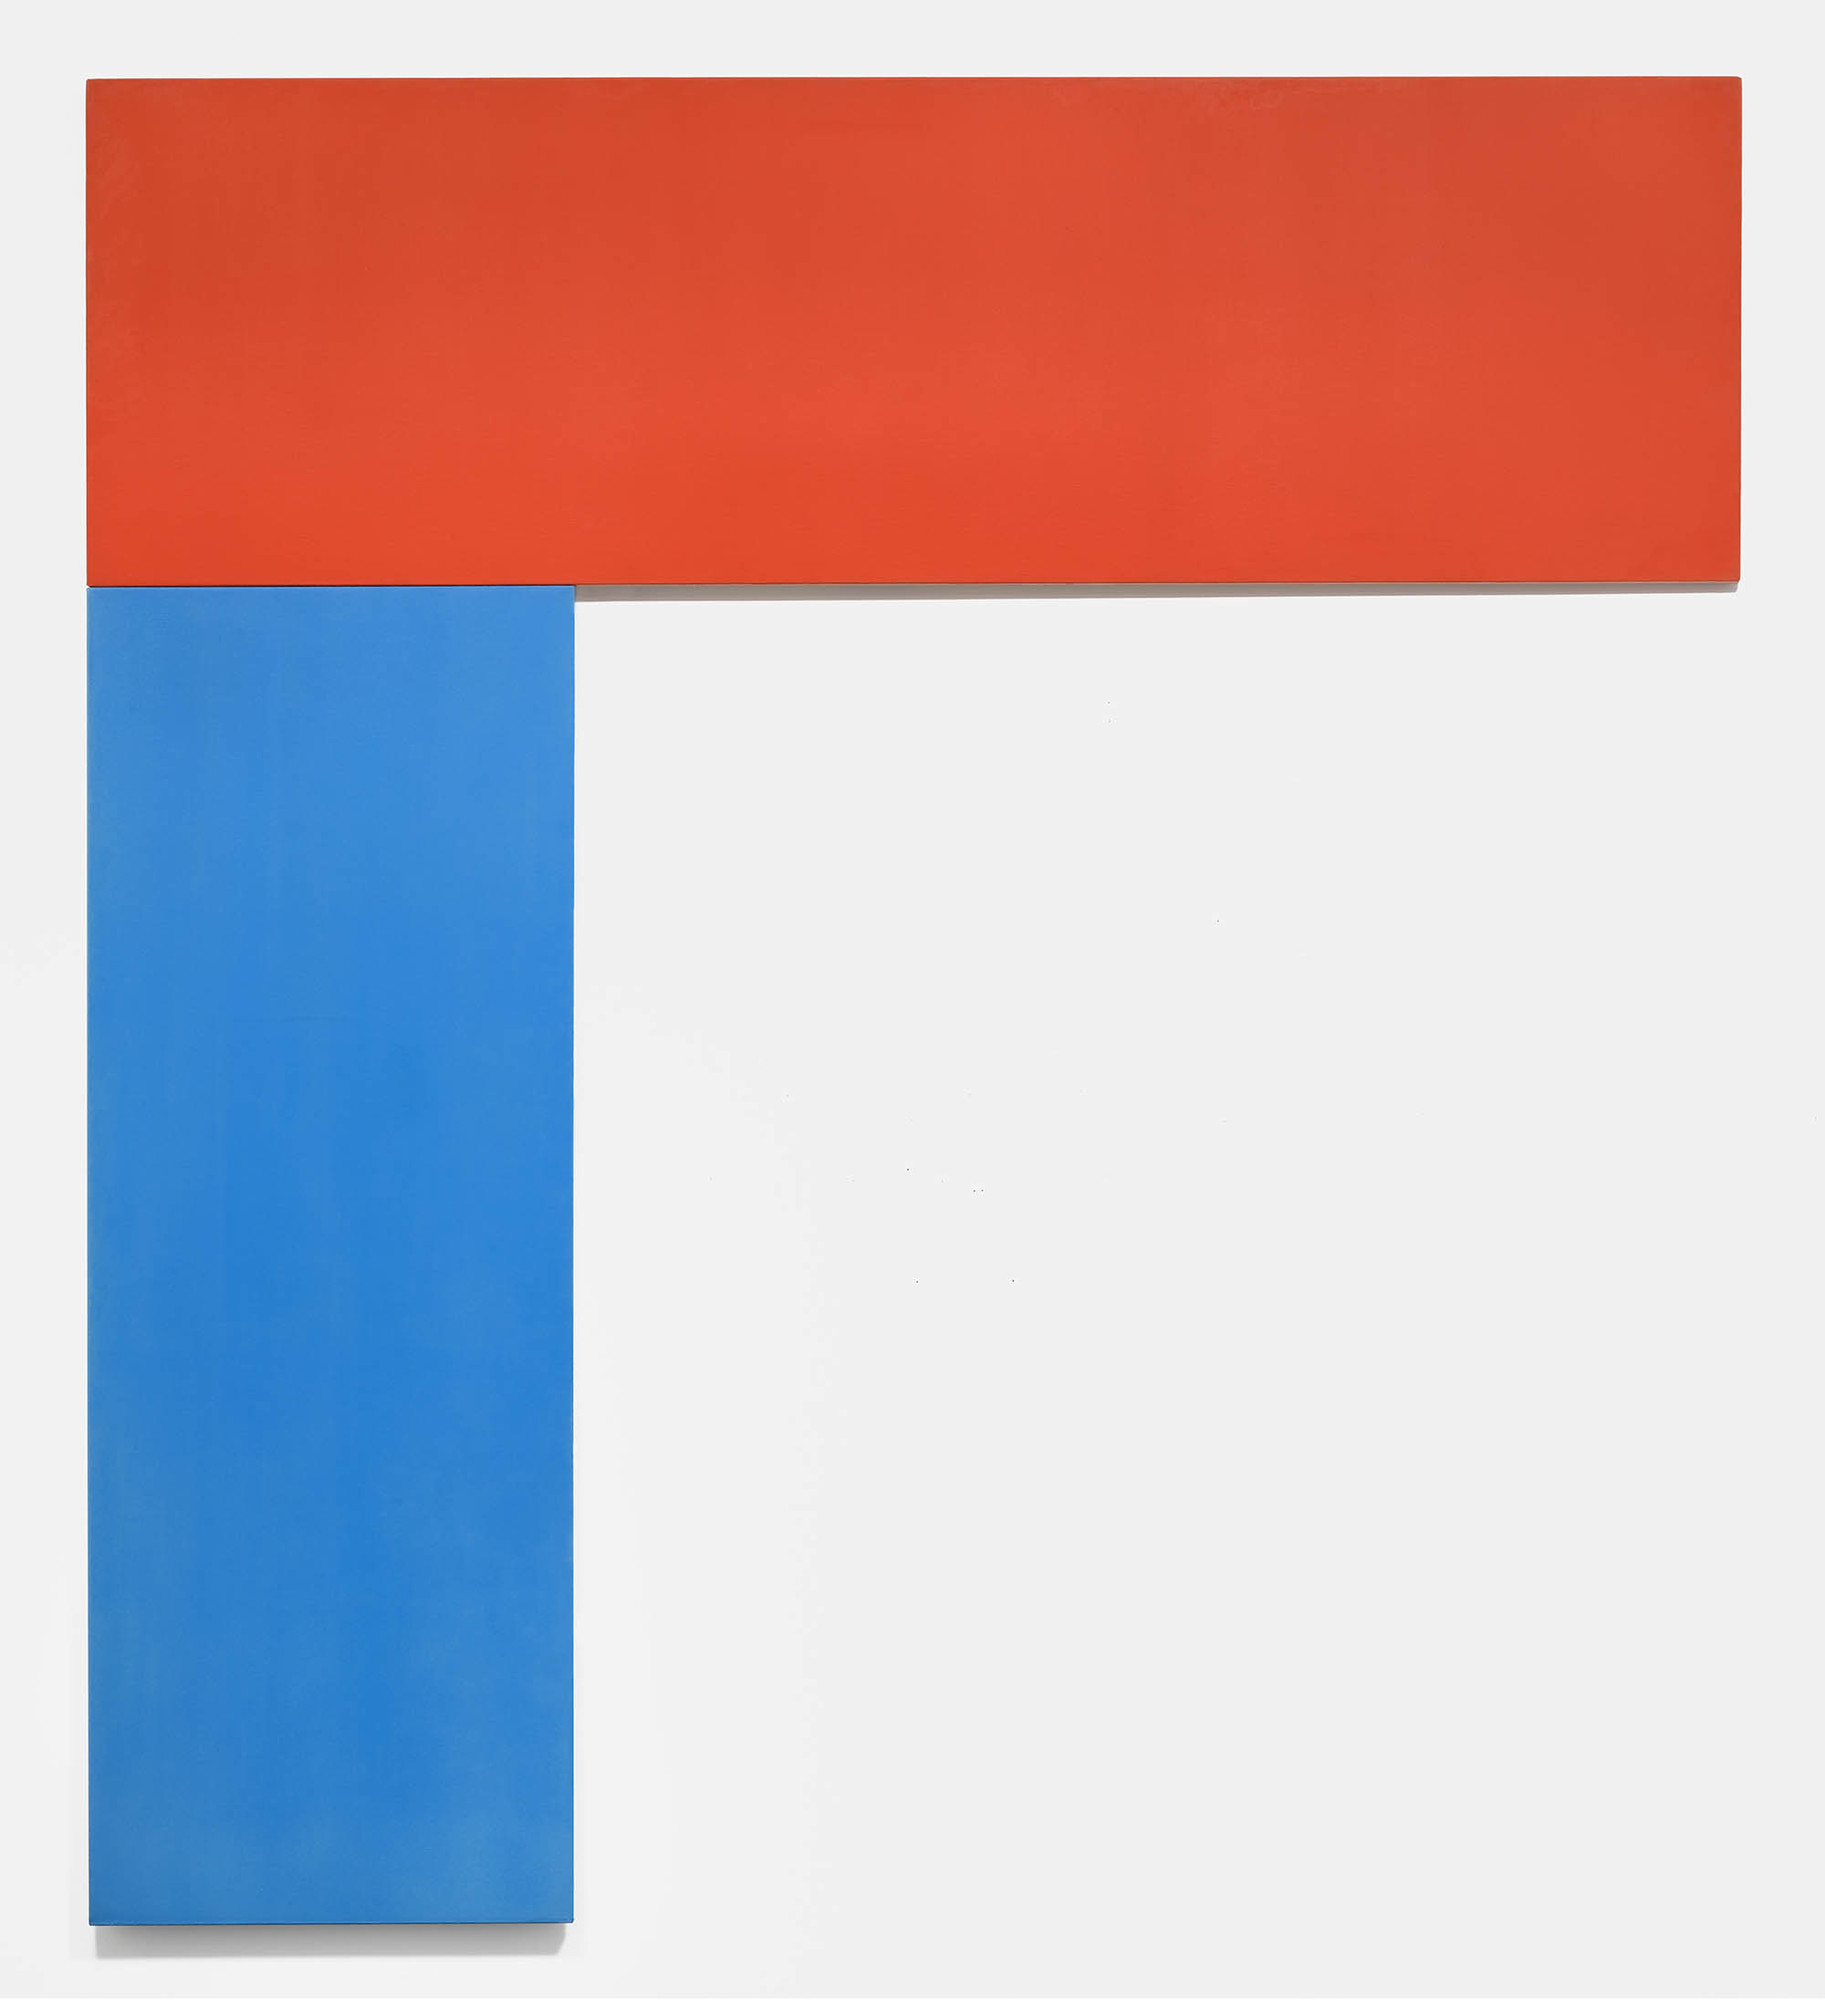 Ellsworth Kelly. Chatham VI: Red Blue. 1971. Oil on canvas, two panels, 9′ 6 1/2″ × 8′ 6 1/4″ (290.8 × 259.7 cm). Gift of Douglas S. Cramer Foundation. © 2016 Ellsworth Kelly